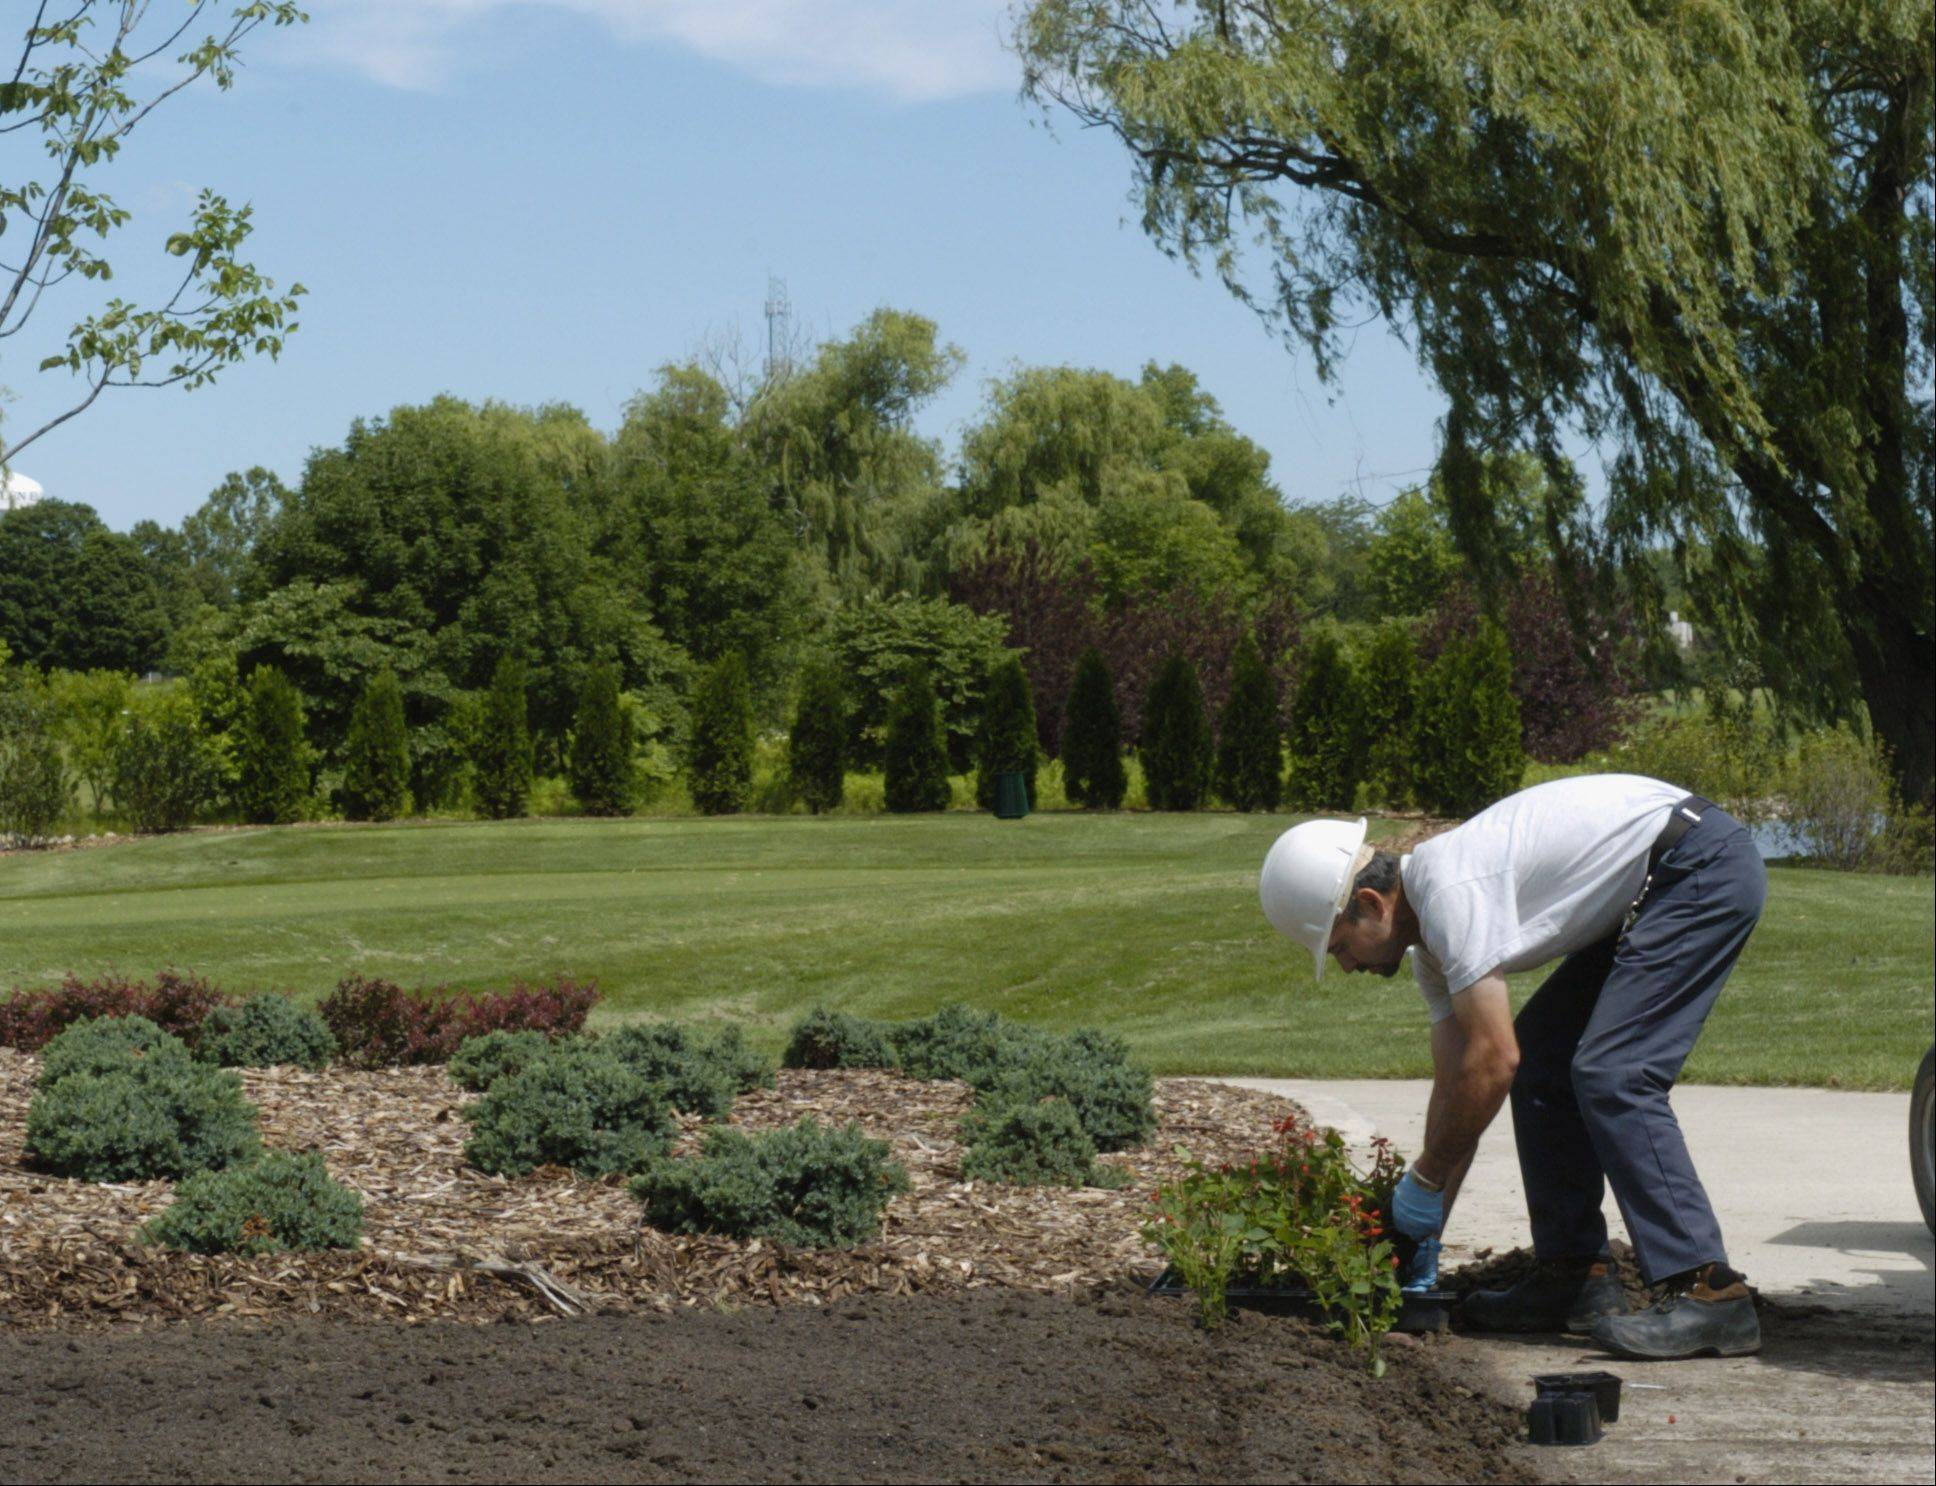 A $6.3 million improvement project at the Village Links of Glen Ellyn approved this week includes upgrades to the clubhouse, parking lot and golf course. Previous renovations to the course were made in 2004.